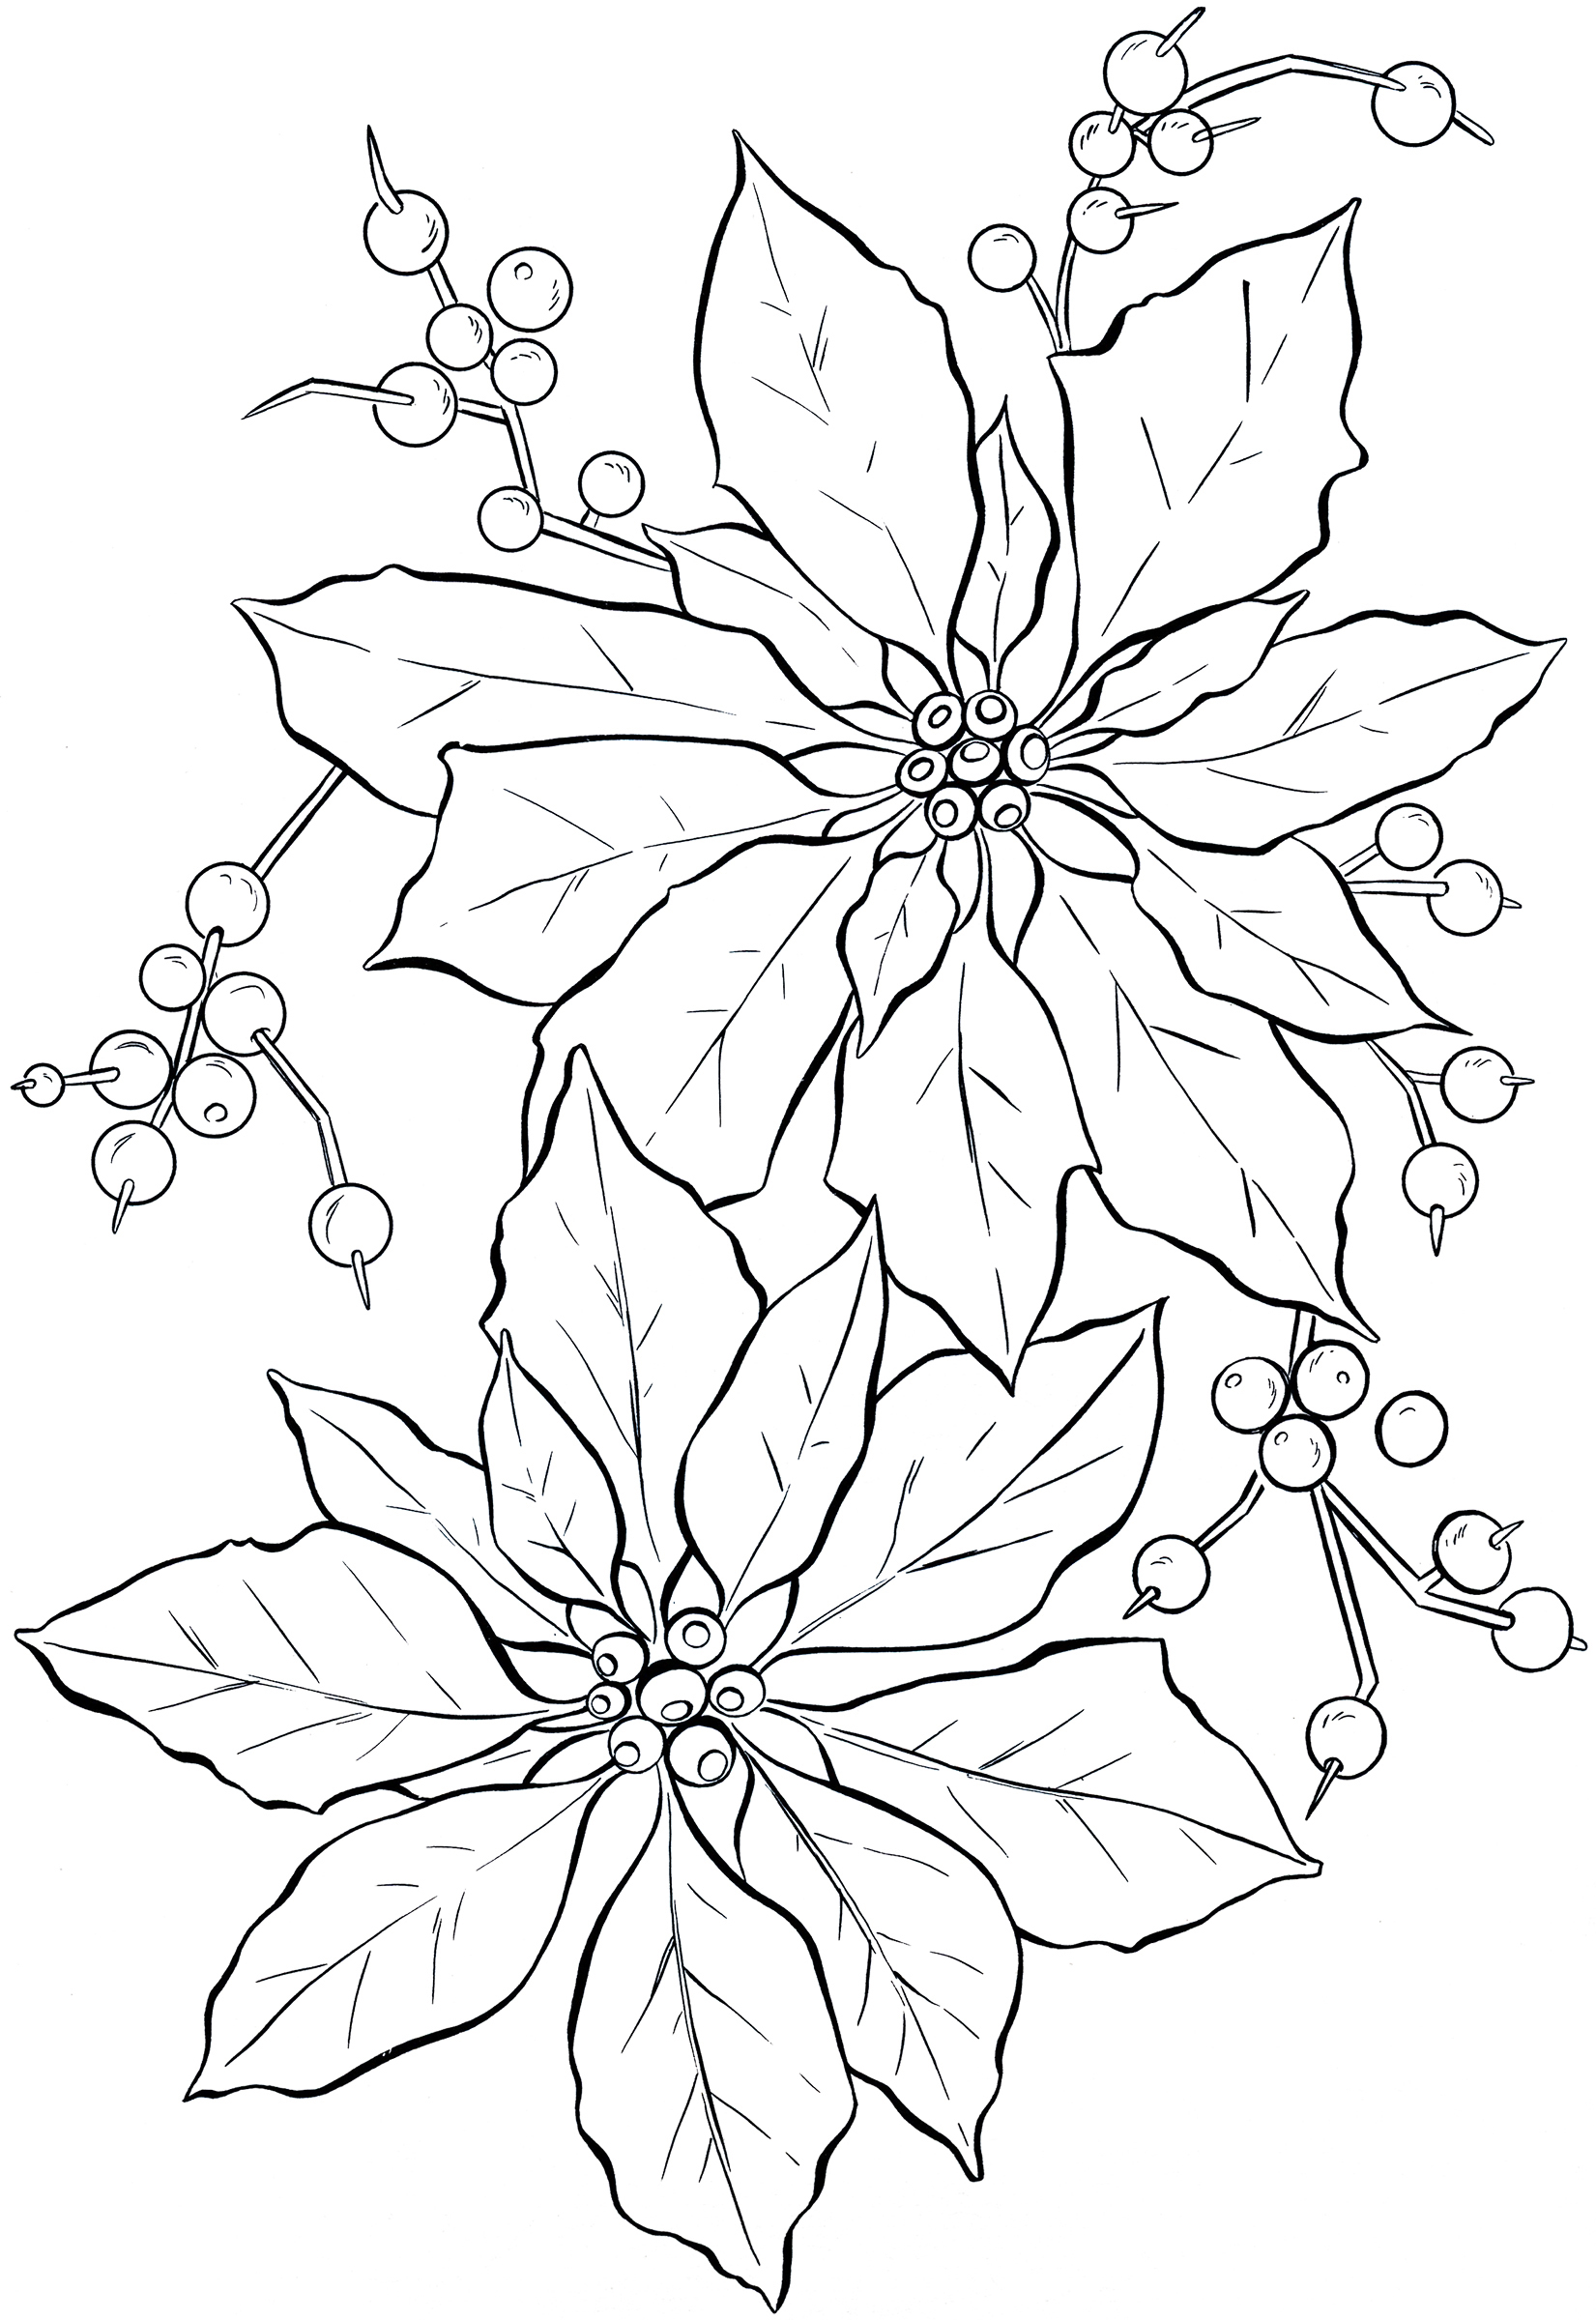 graphical coloring pages - photo#44